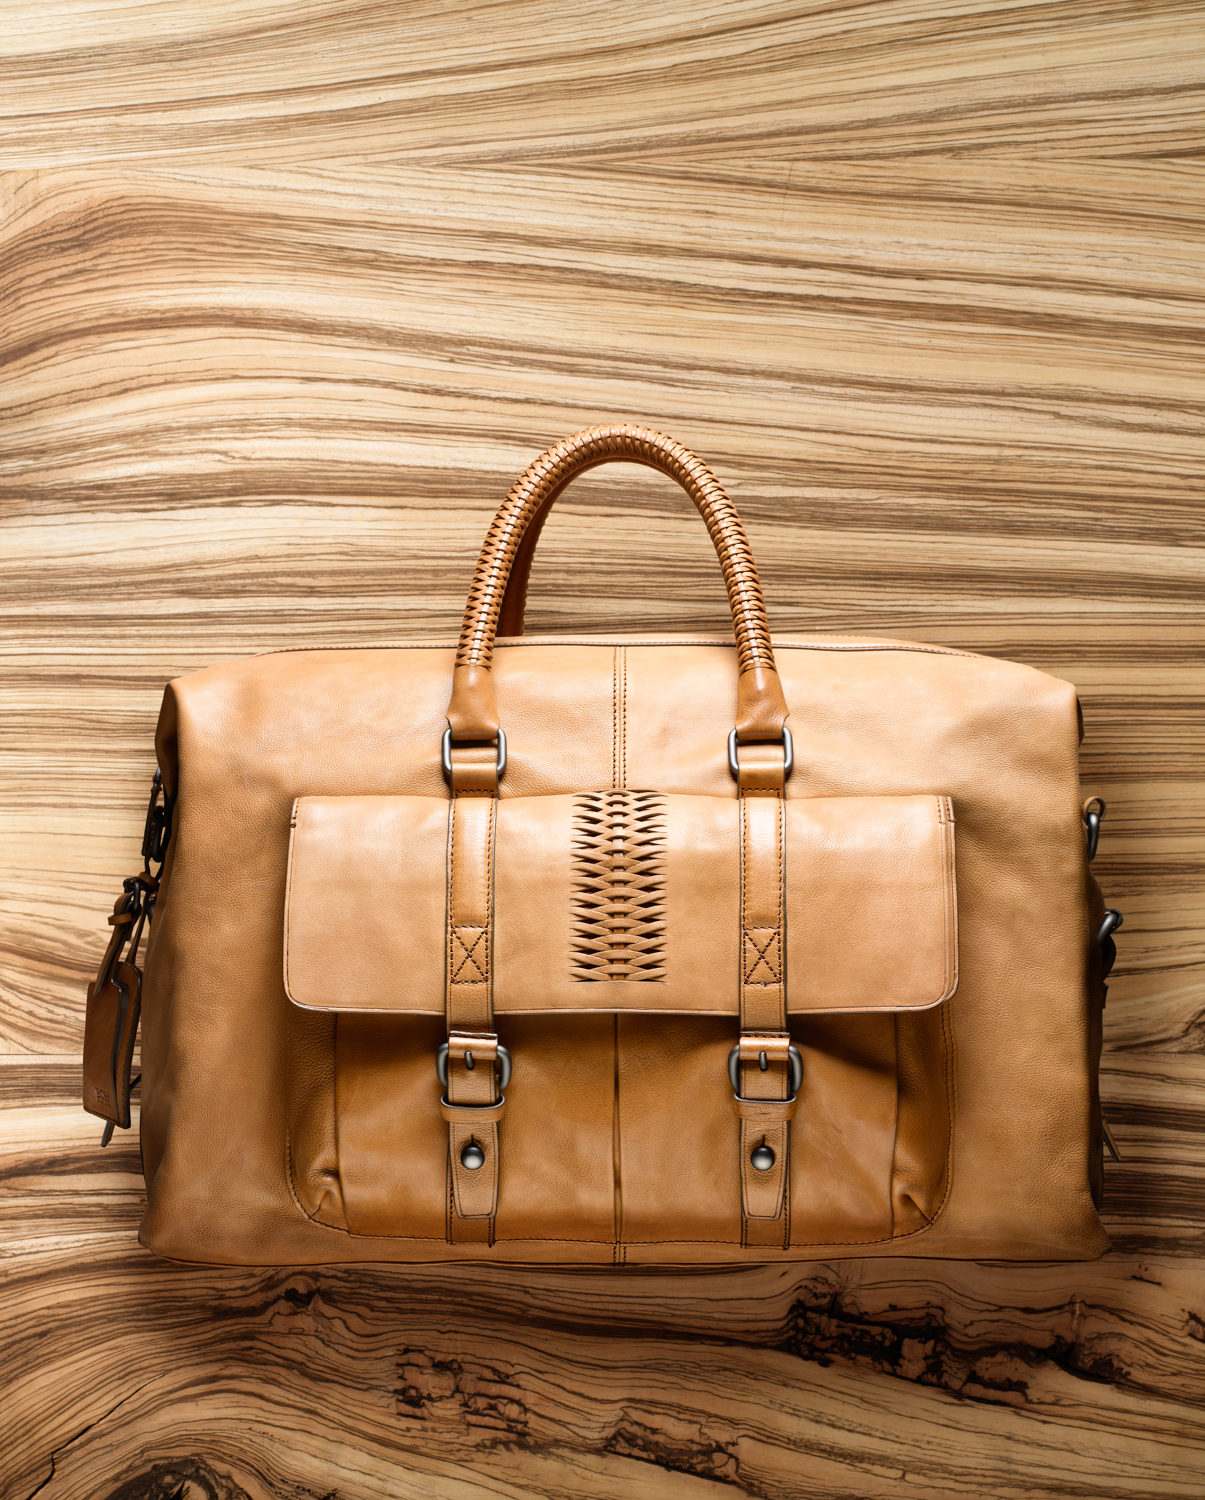 Sayers Accessories-22.jpg